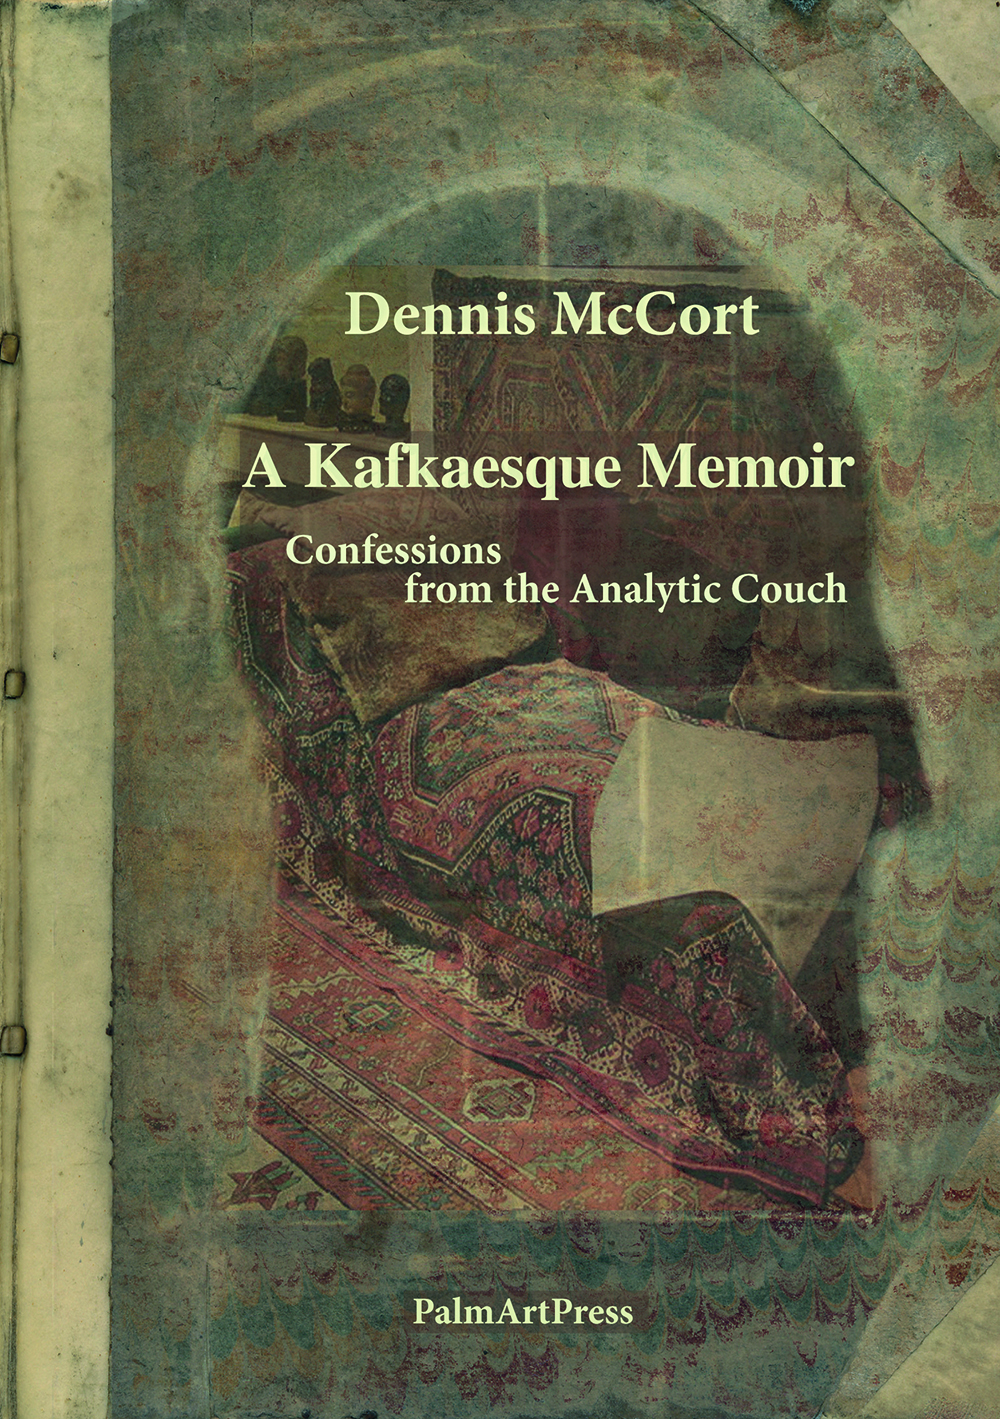 A Kafkasque Memoir - Confessions from the Analytic Coach